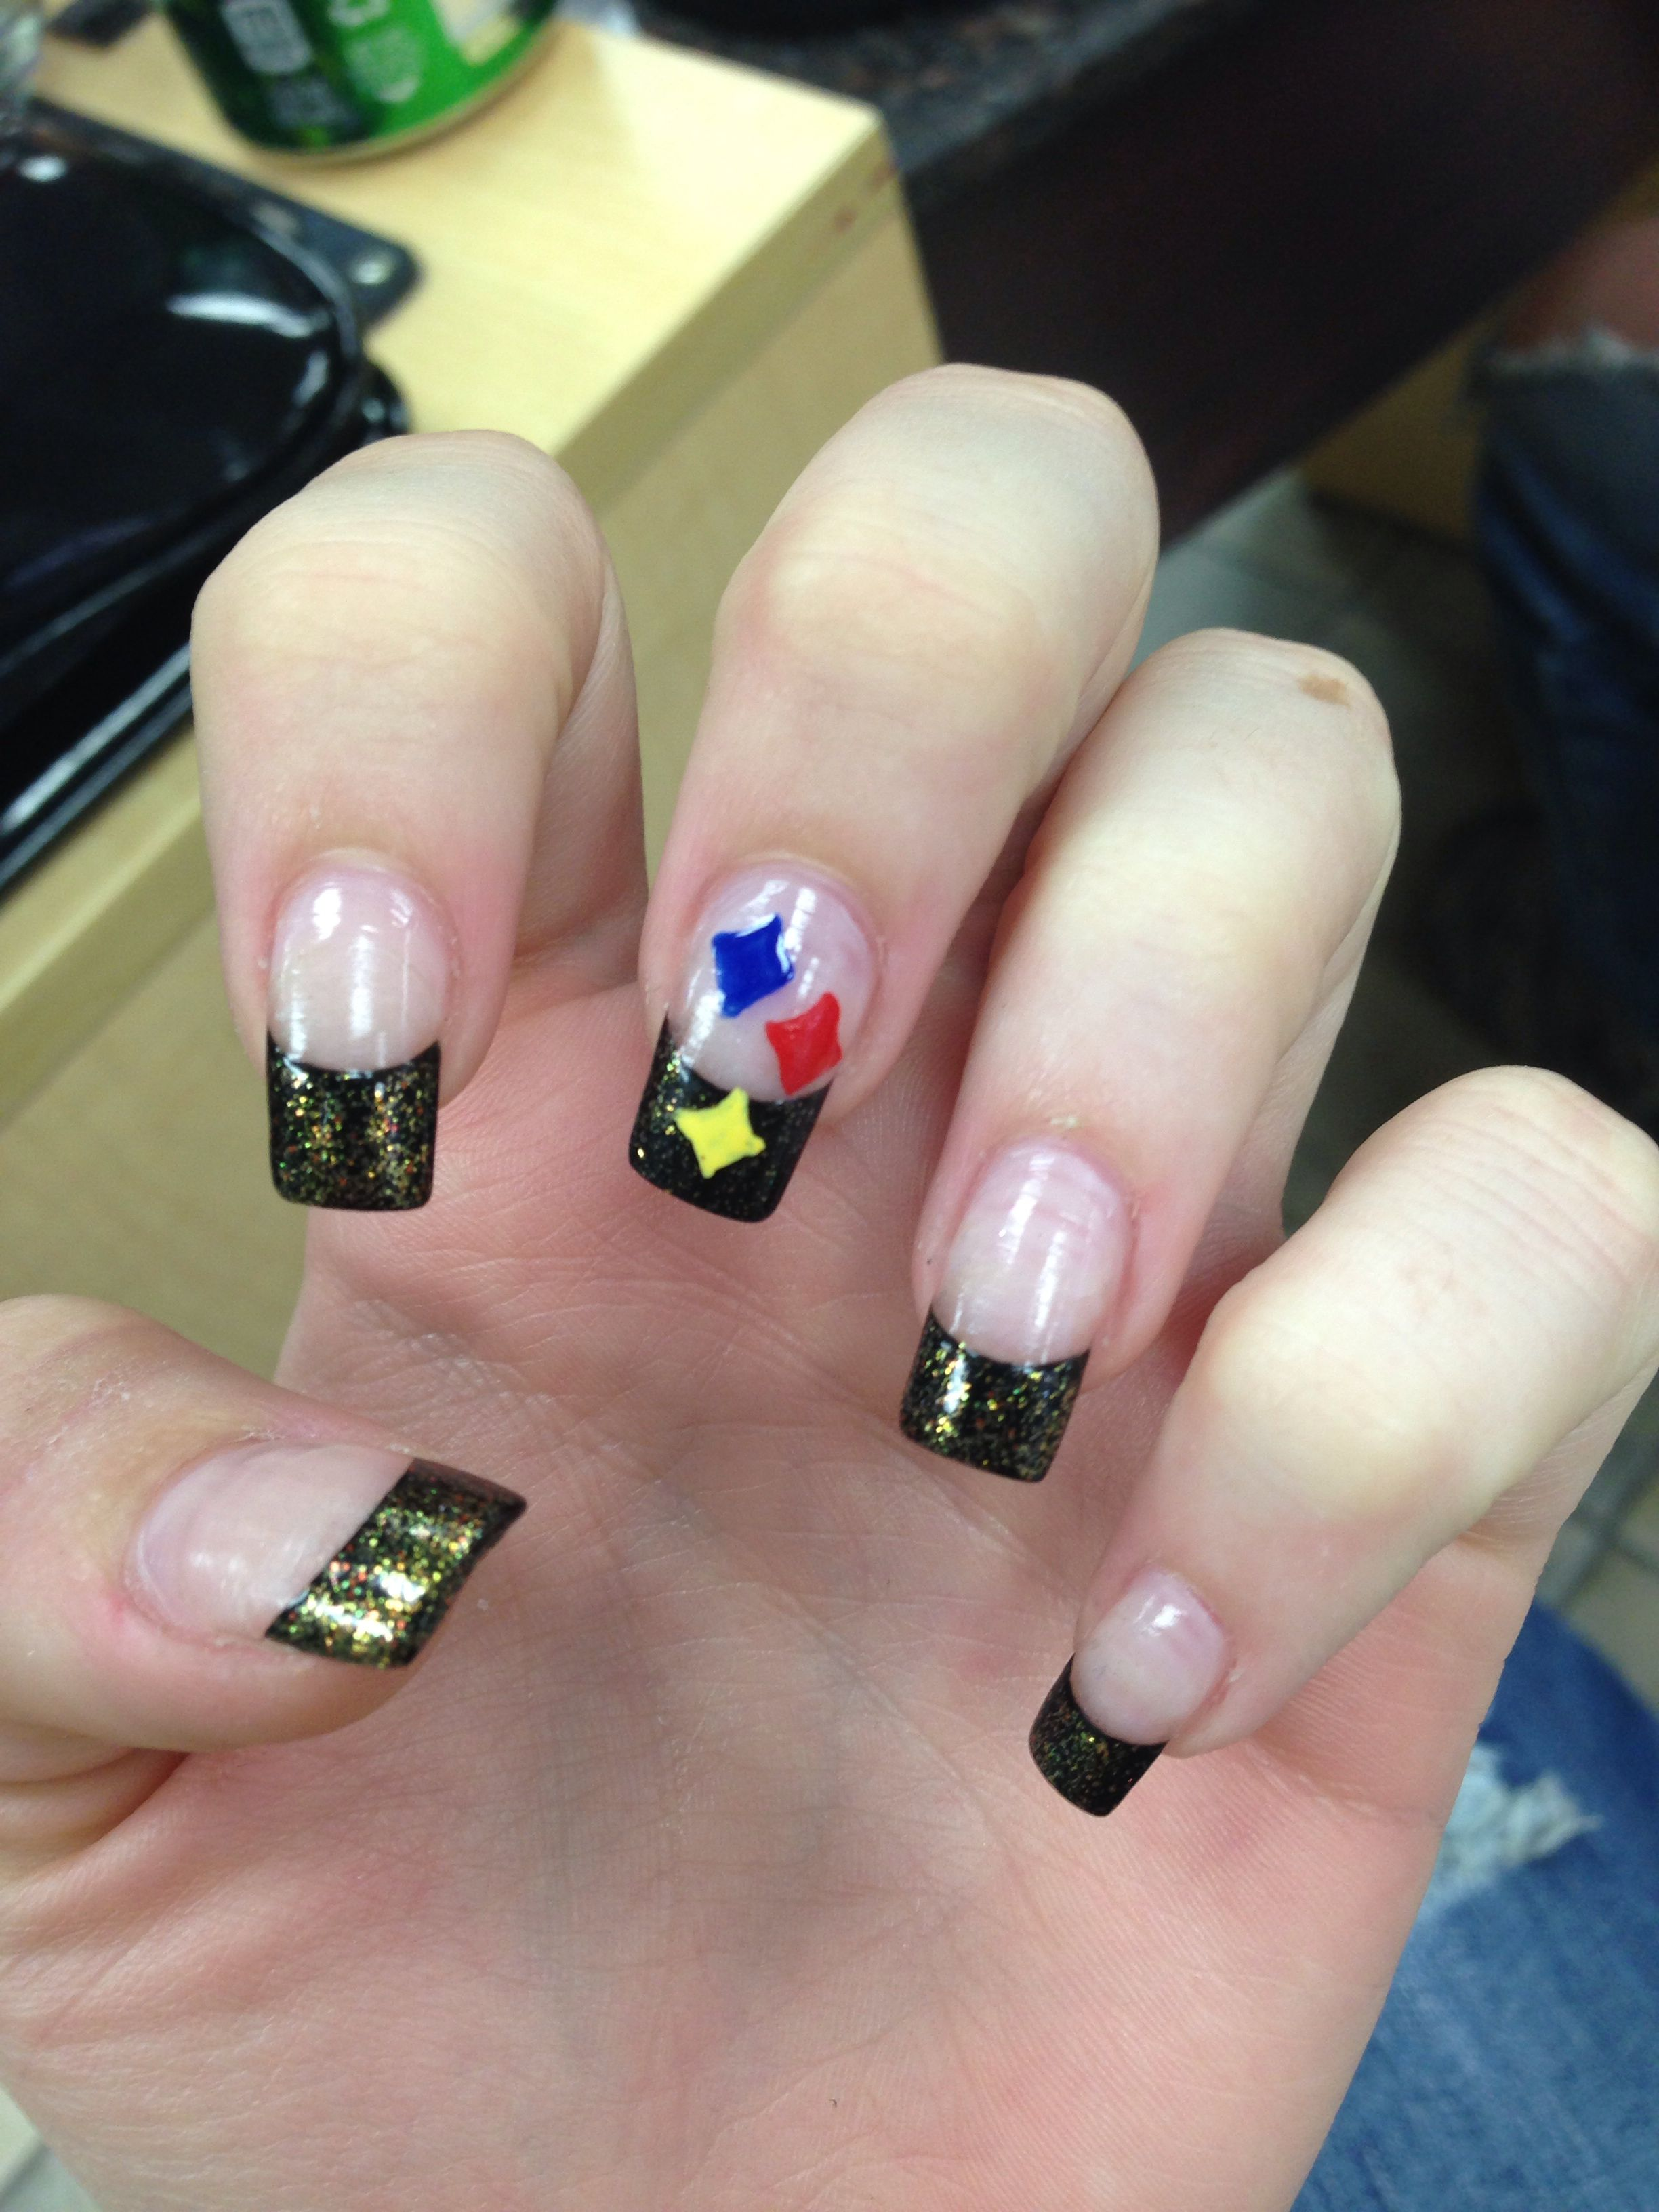 Steelers nails | my nails | Pinterest